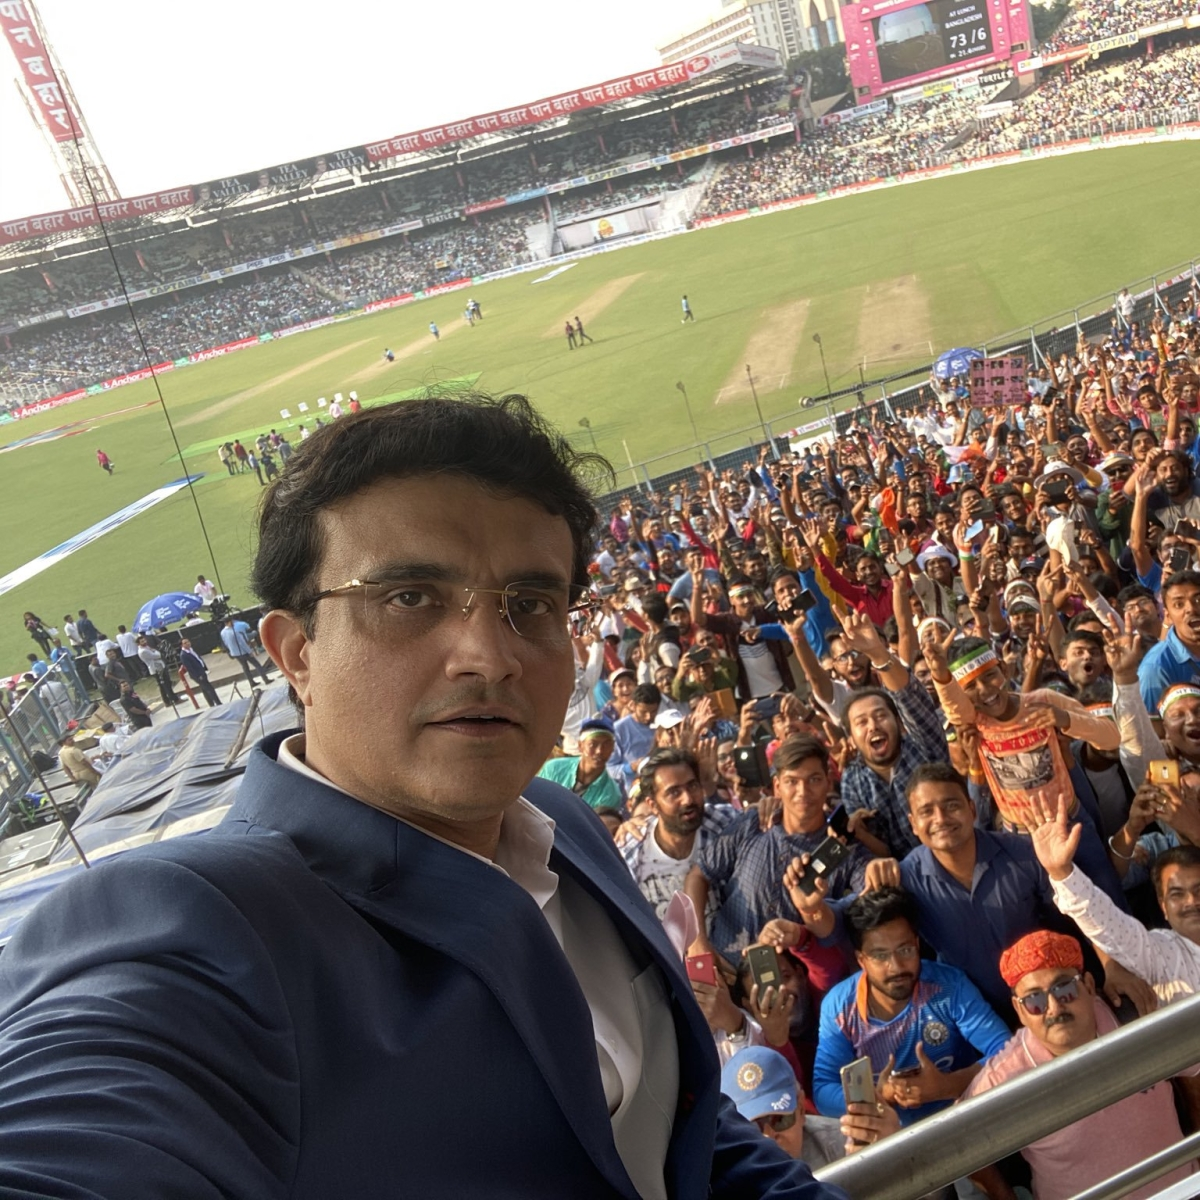 Ganguly's selfie wins praise from fans on Twitter